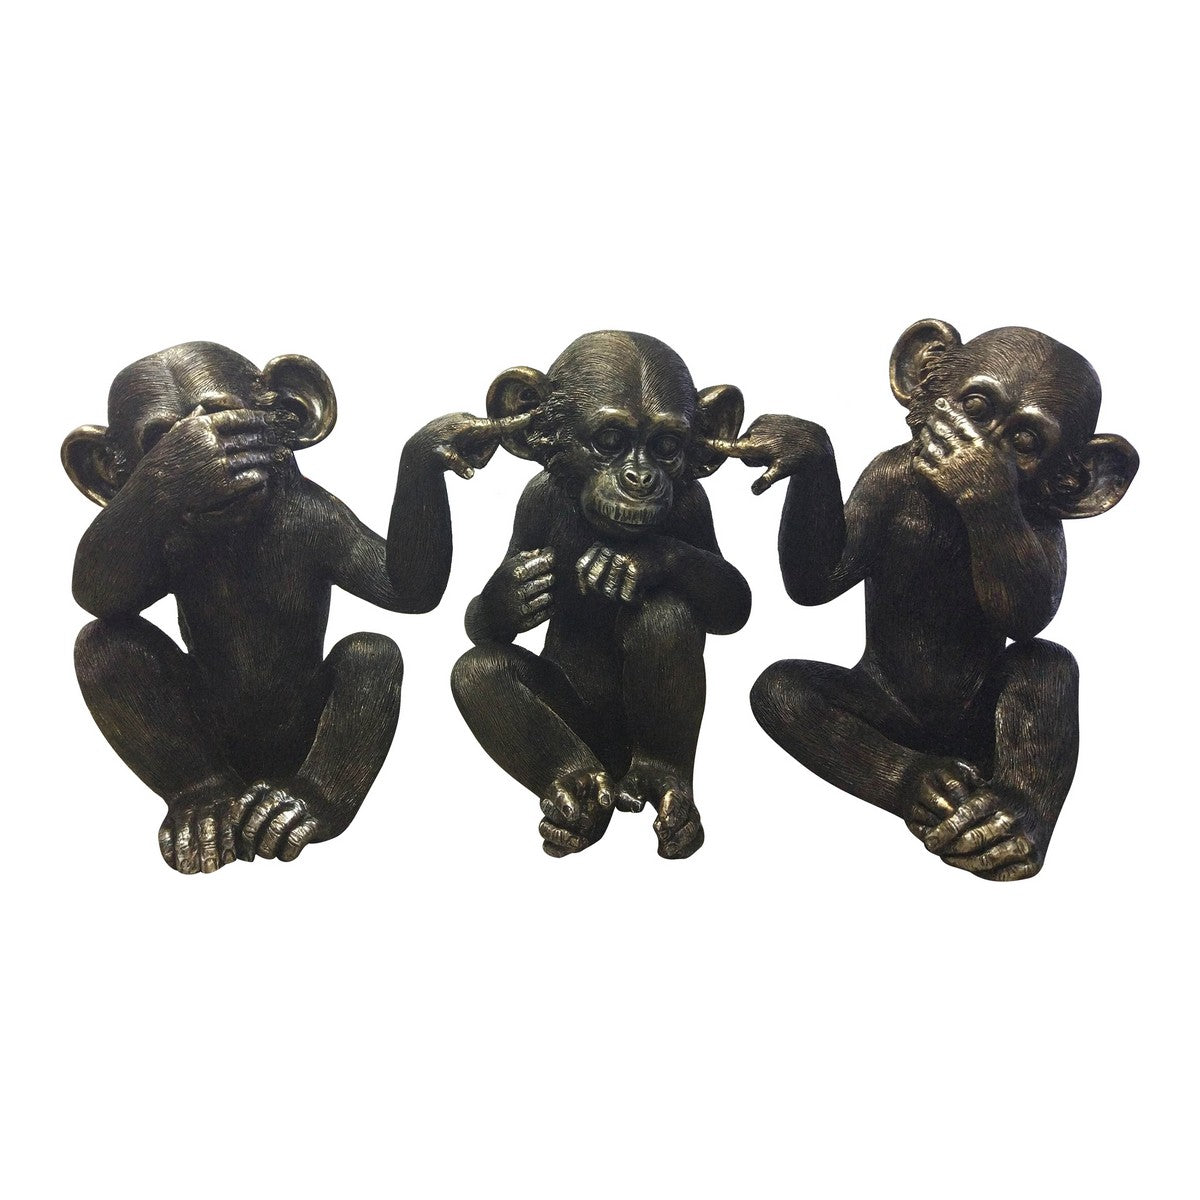 Moe's Home Collection He Did It Chimps Set of Three - LA-1060-02 - Moe's Home Collection - Art - Minimal And Modern - 1